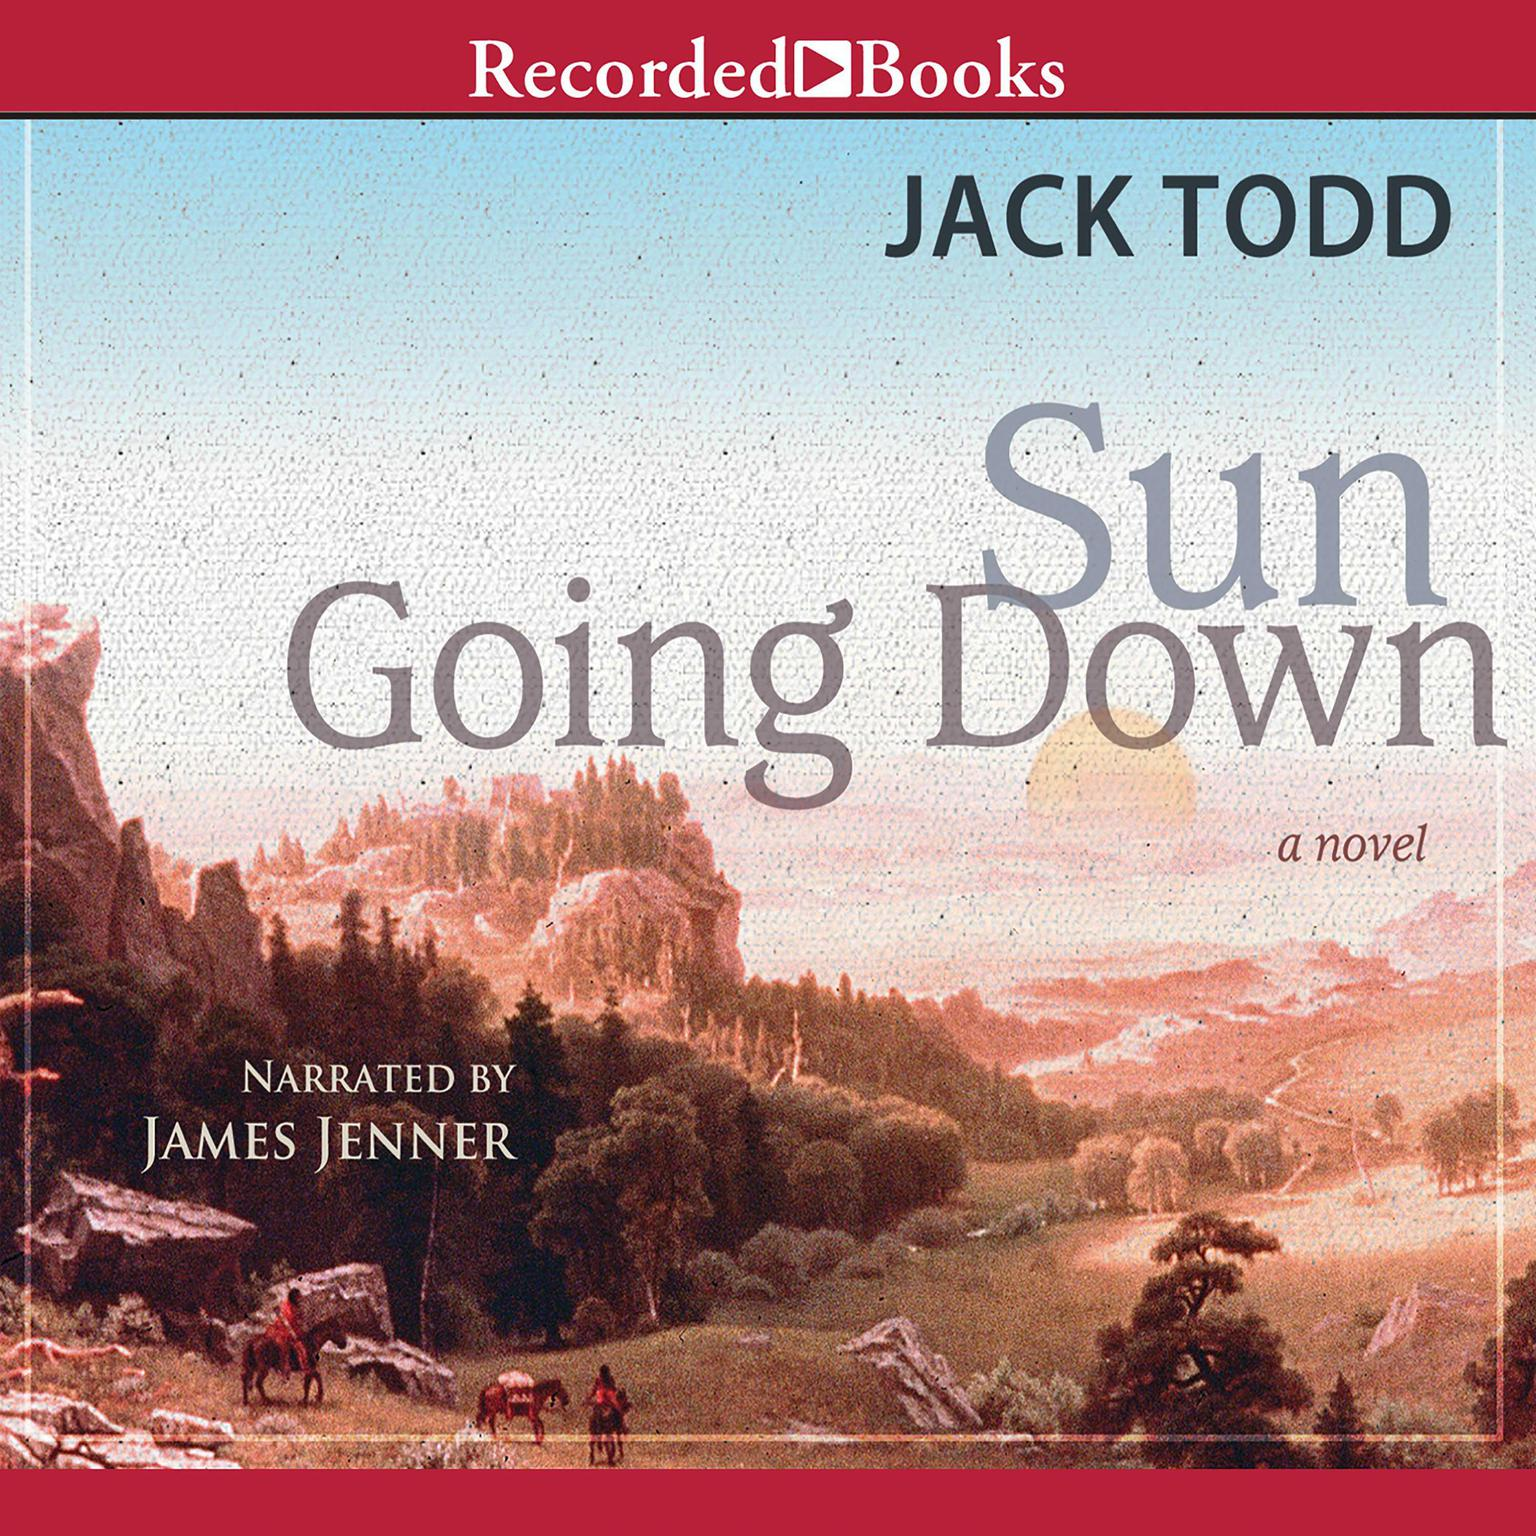 Printable Sun Going Down Audiobook Cover Art